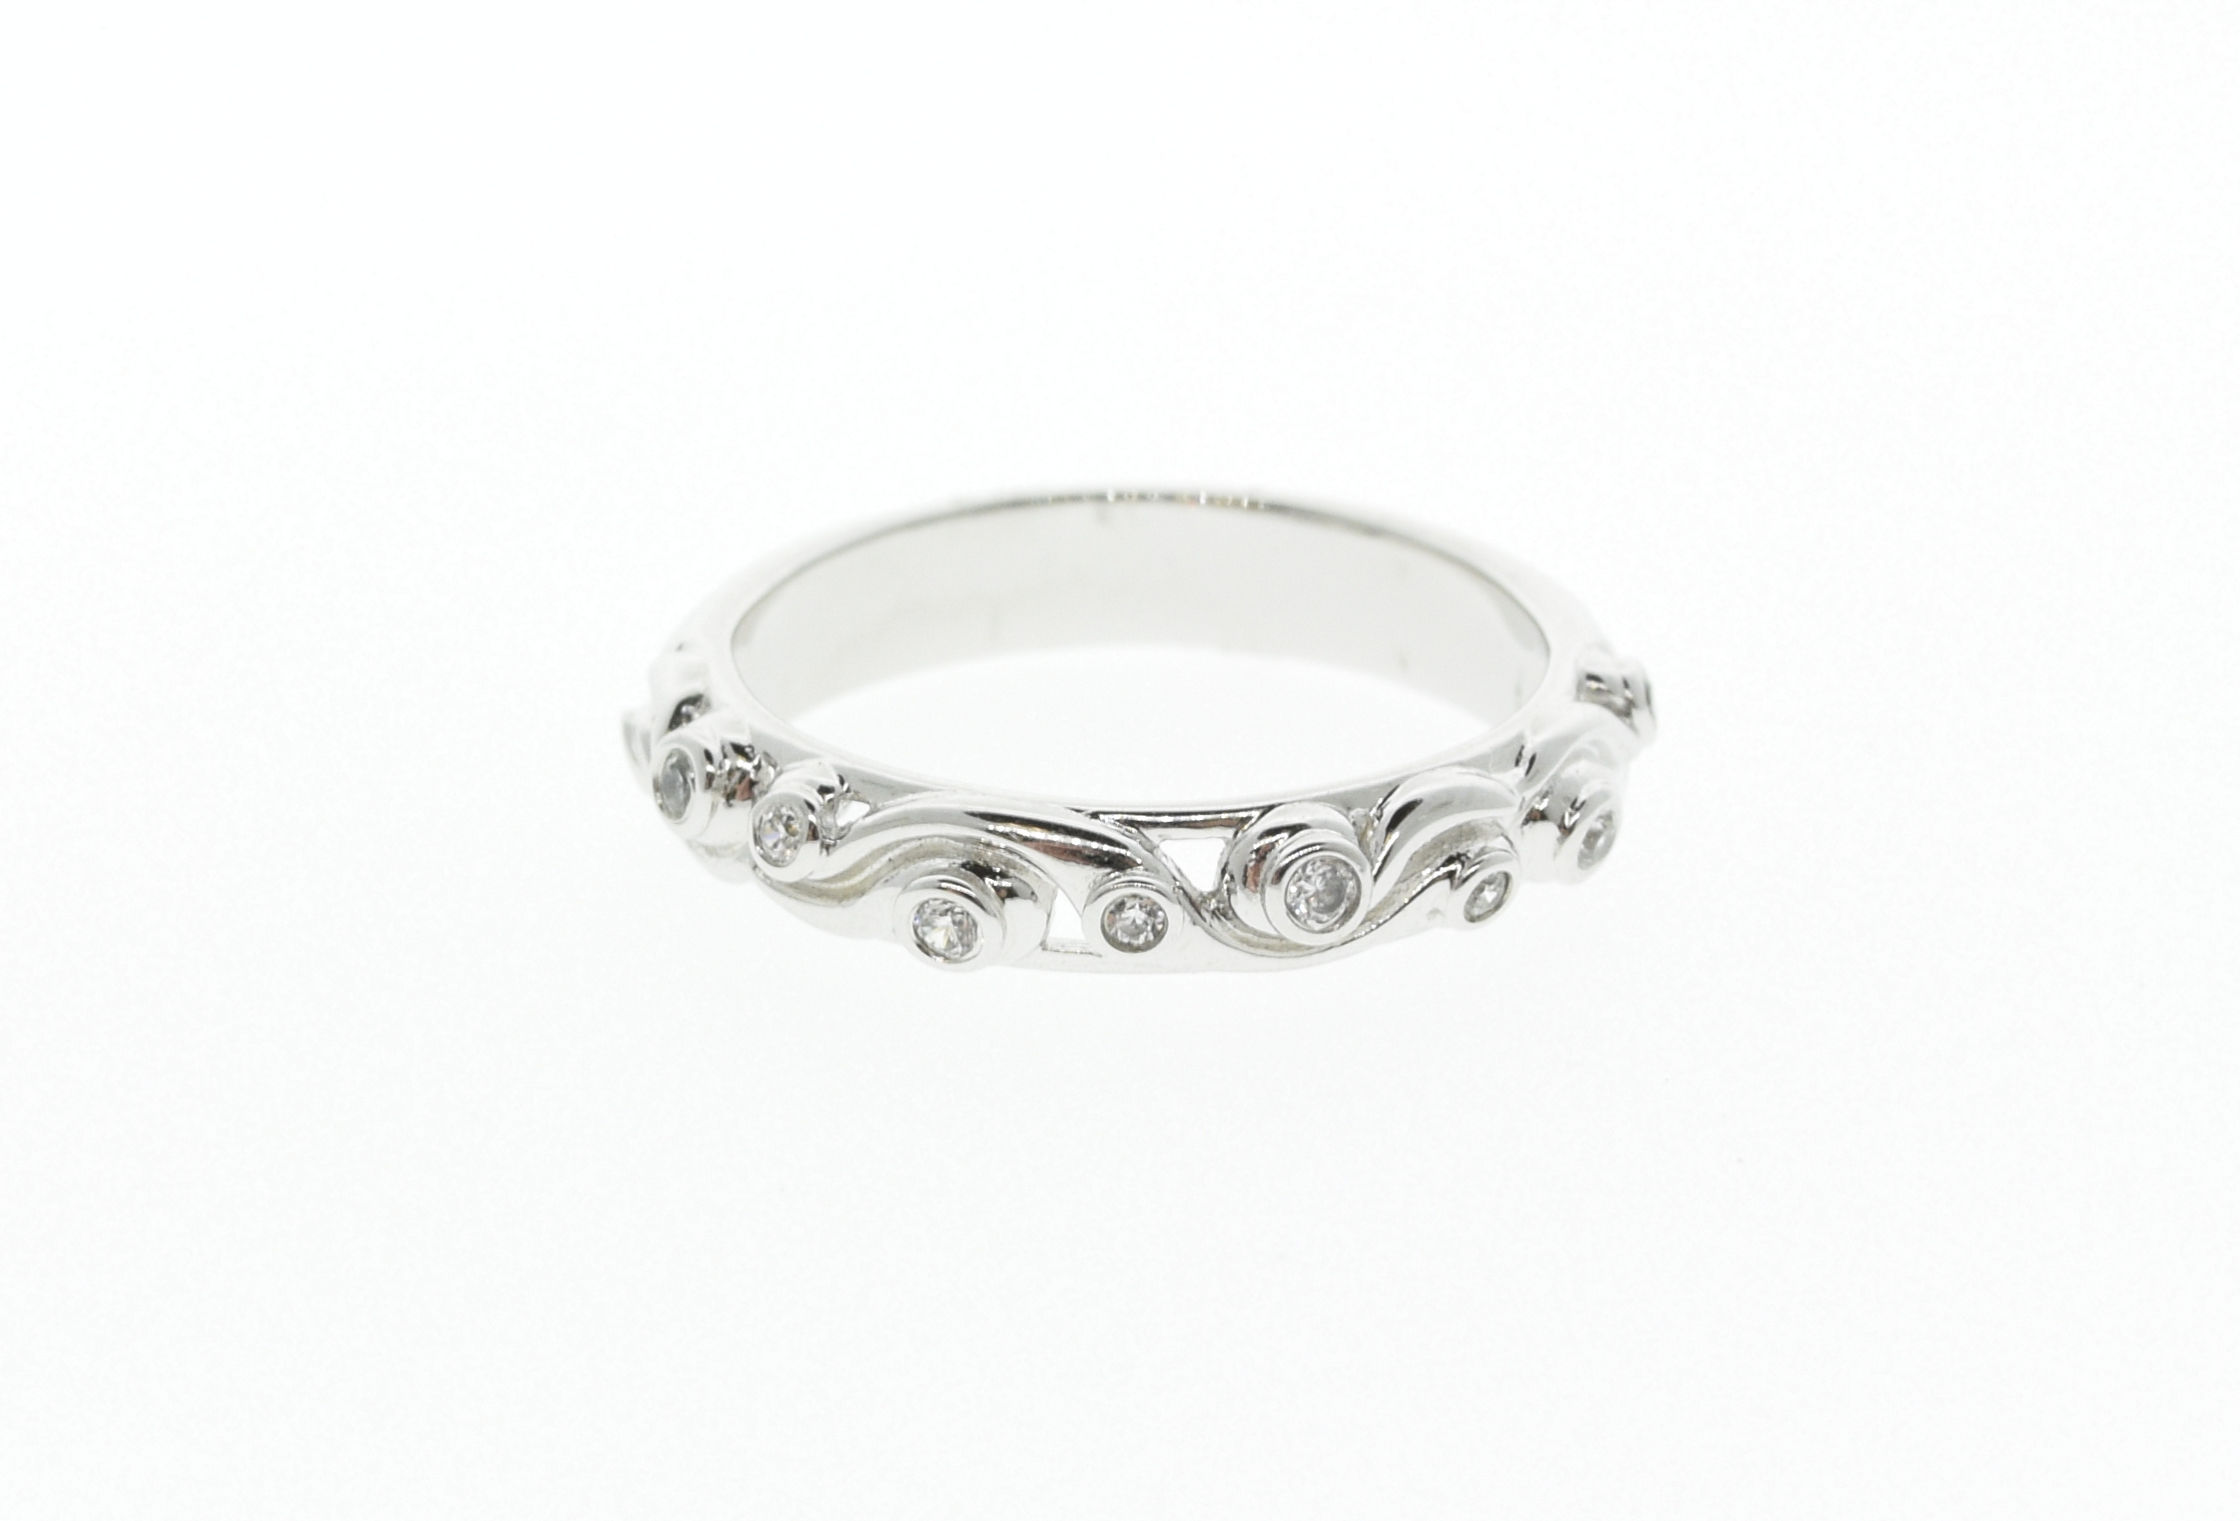 14kt WG 1/10 ct SI1 G/H Swirly Band - 14kt WG 1/10 ct SI1 G/H Swirly Band  Matching Ring is 140-00776